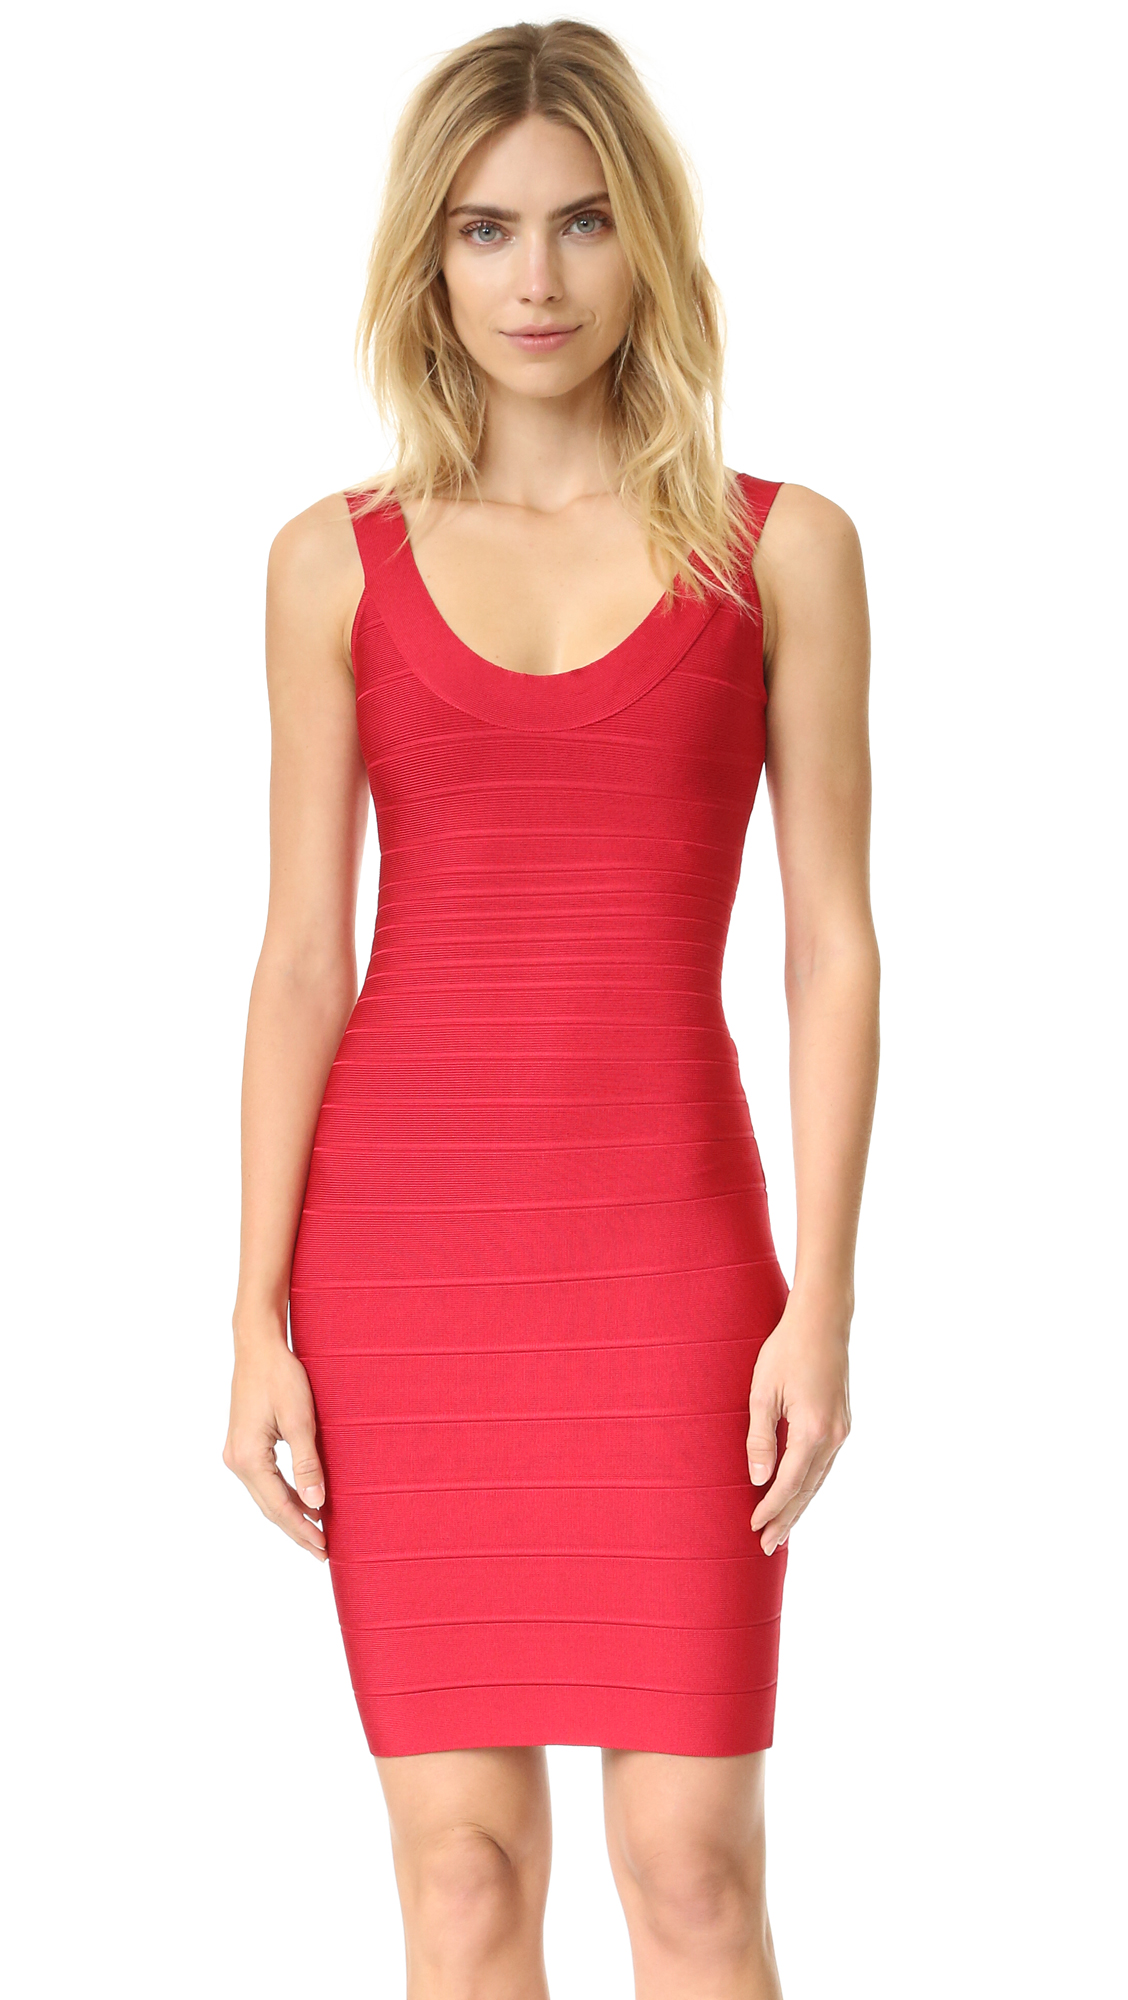 Herve Leger Signature Essentials Scoop Neck Dress - Lipstick